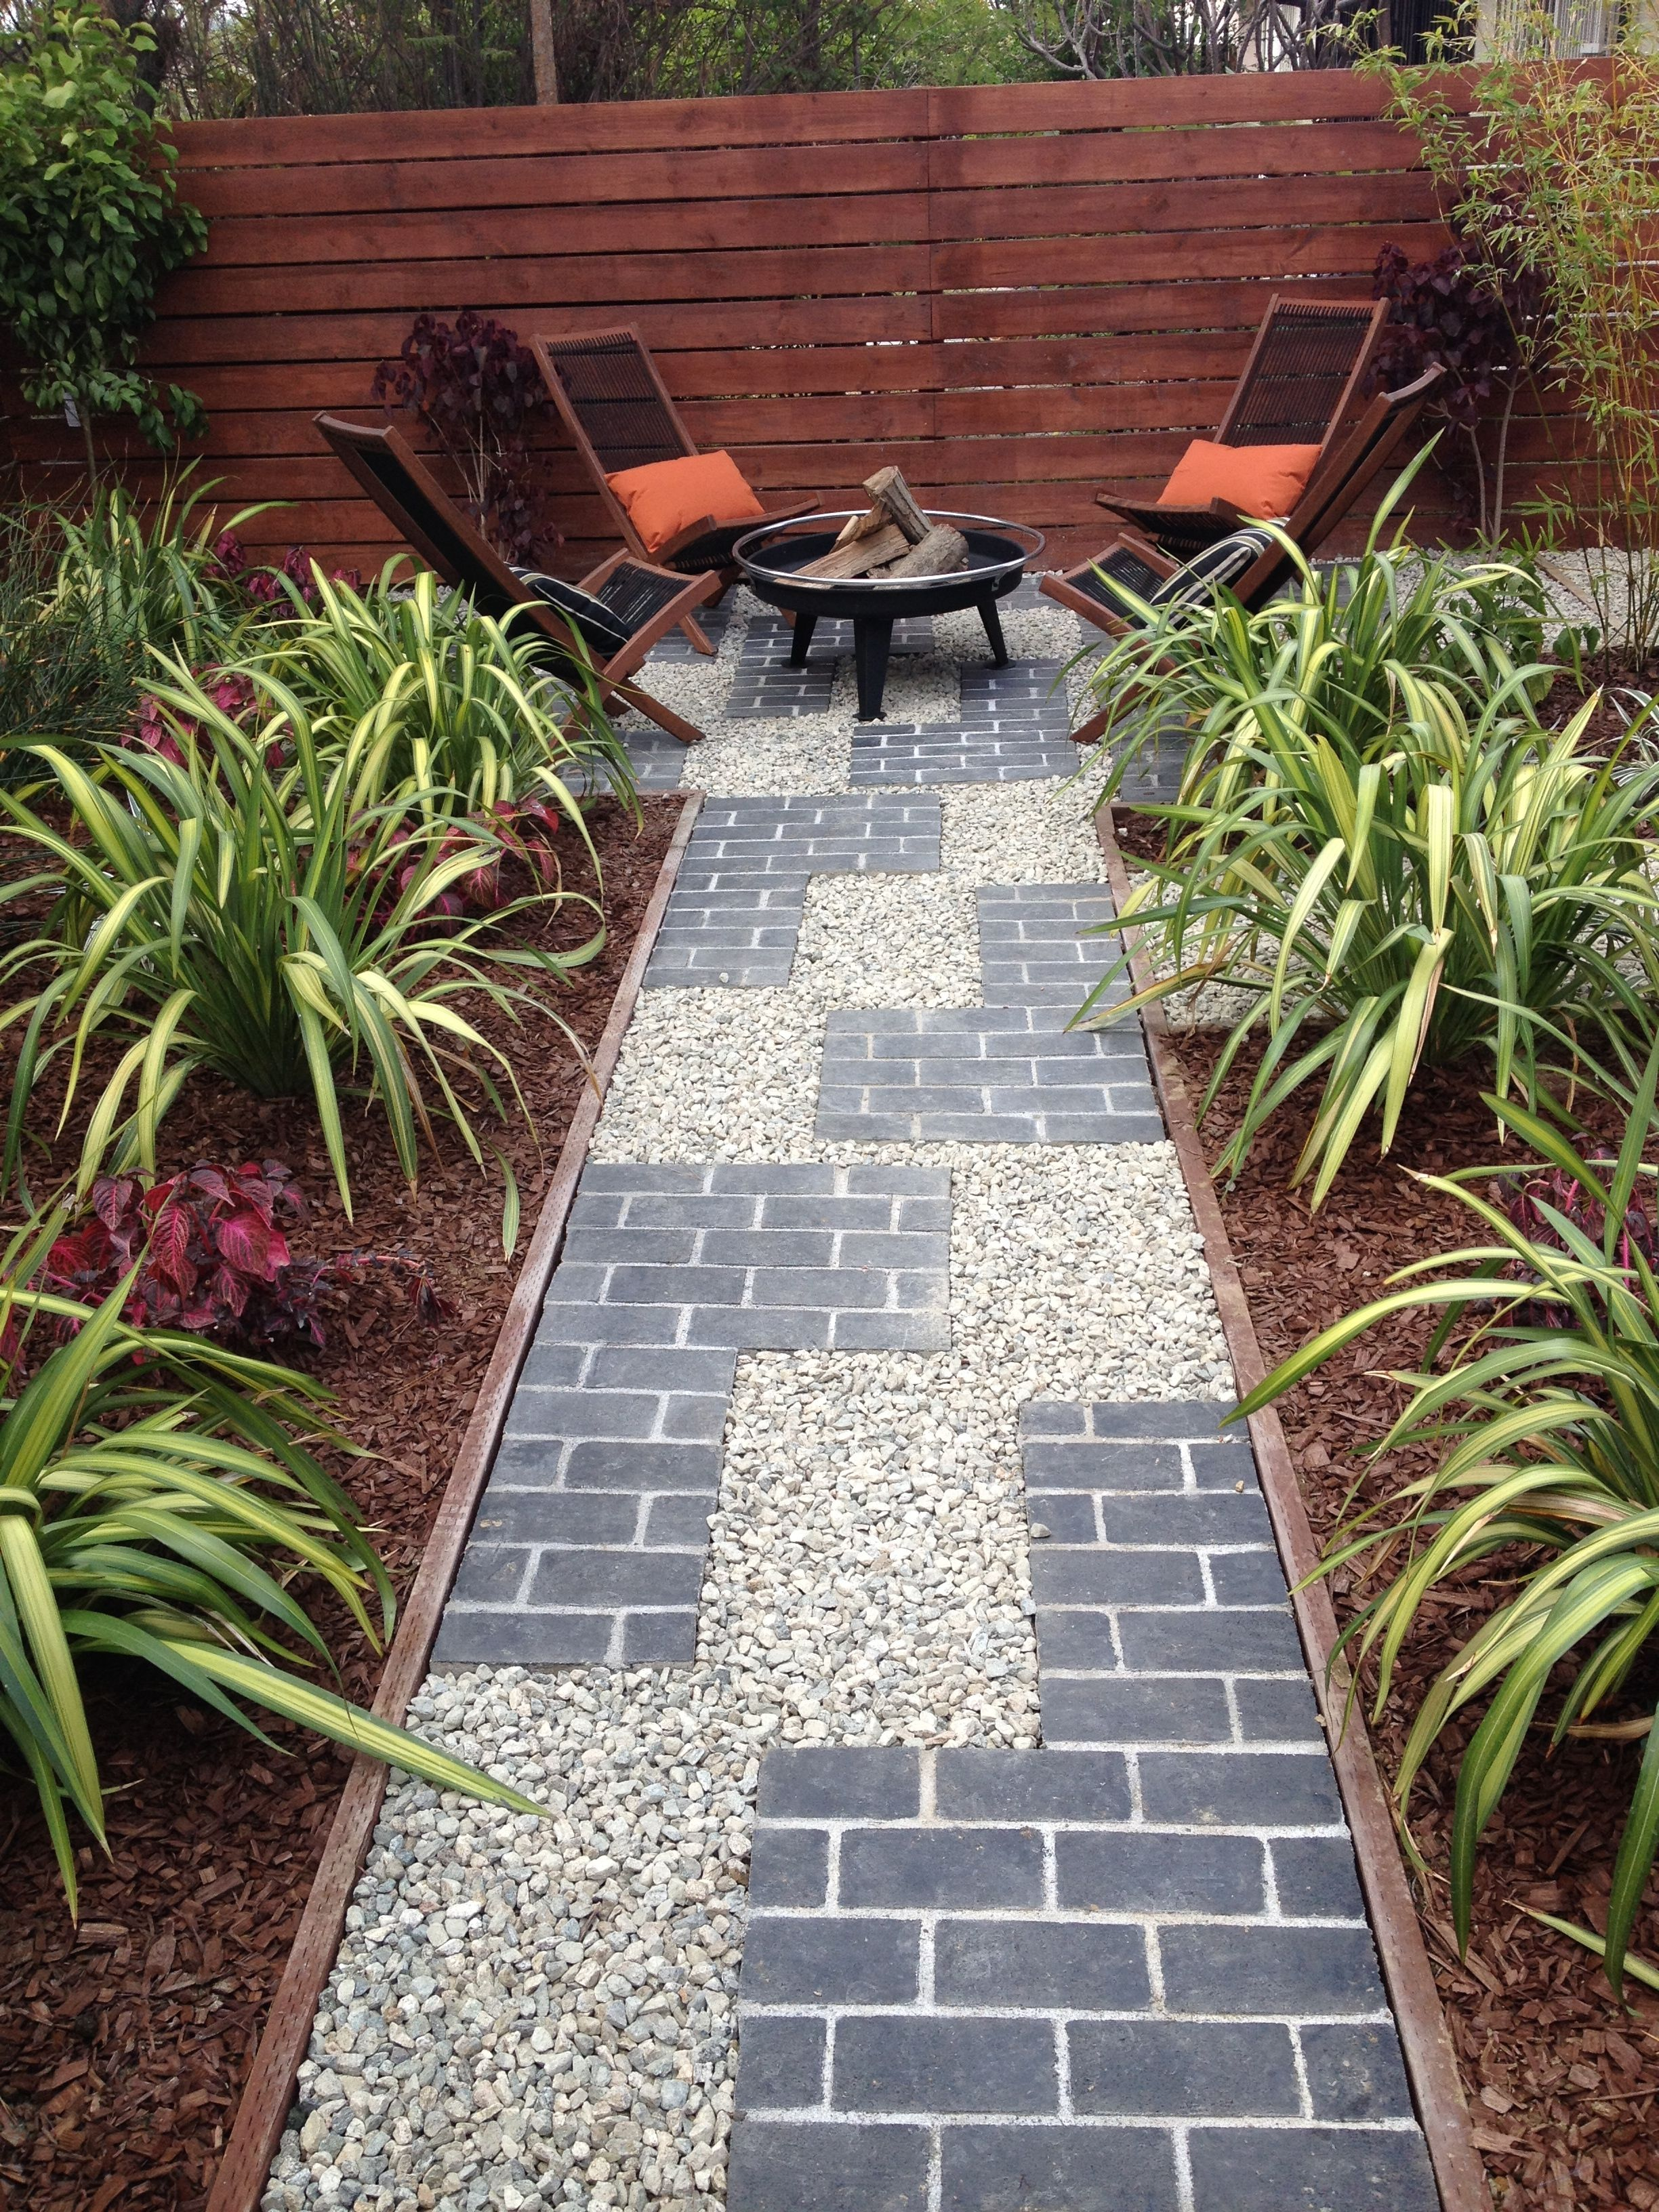 tetris inspired pathway with grey